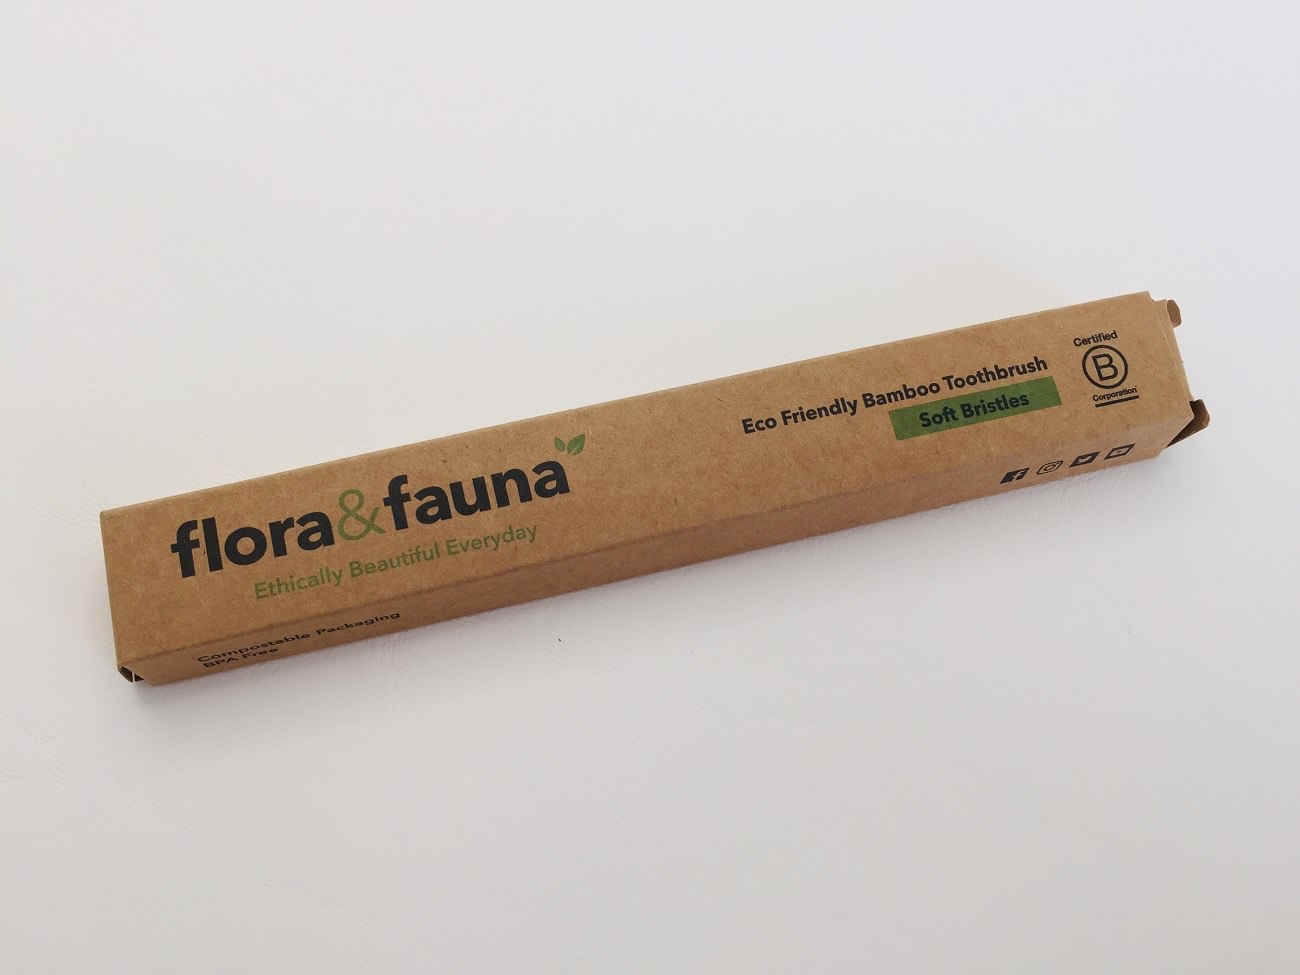 The Flora & Fauna Bamboo Toothbrush recyclable packaging